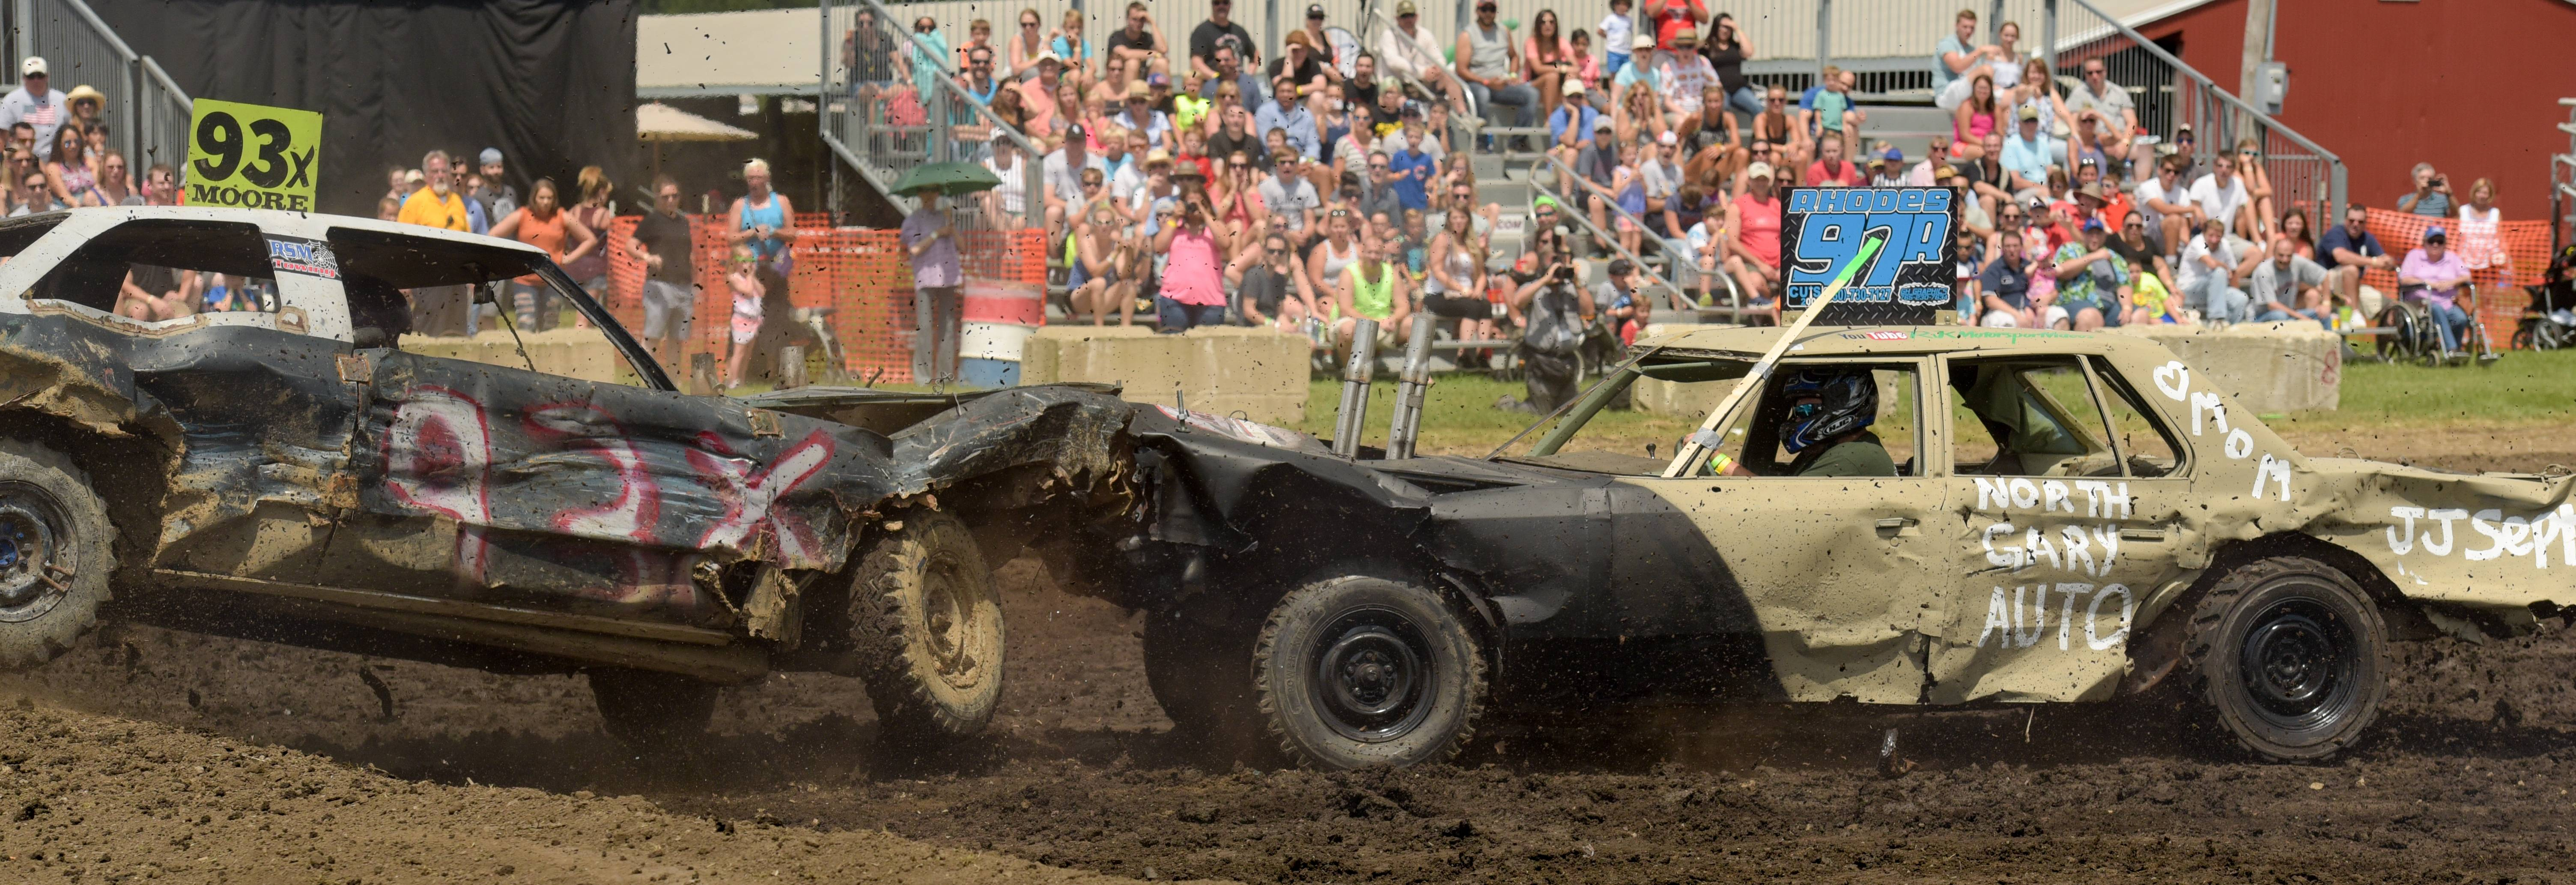 Vince Moore of Lombard is taken out of the game by Adkin Rhodes of St. Charles during the demolition derby at the DuPage County Fair on Sunday. Rhodes survived the demo and moved on to the finals.